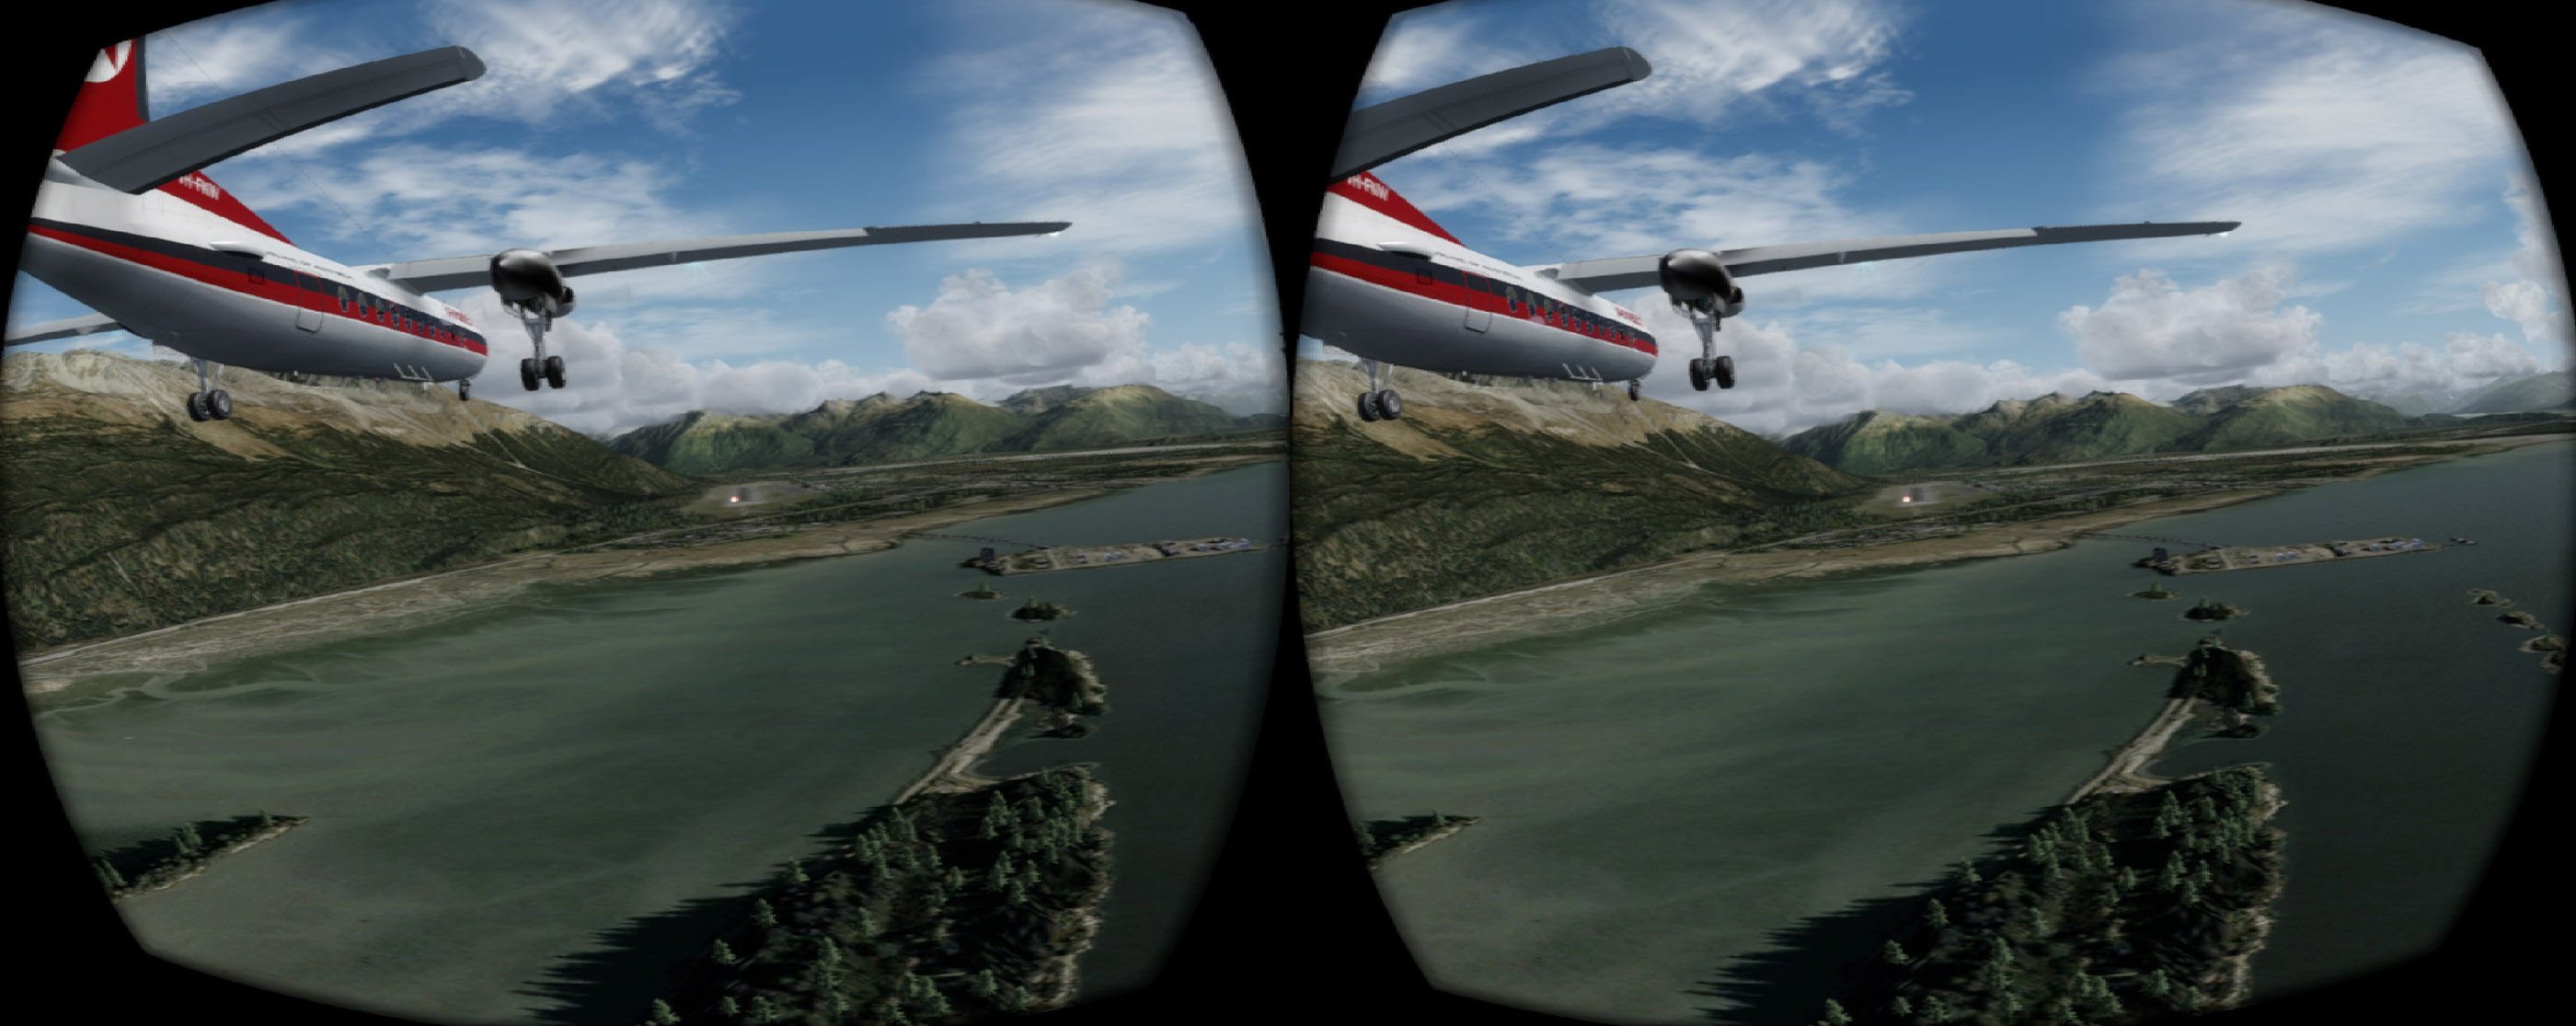 VR in P3D v4 3 is getting good    - Flight Sims - Mudspike Forums